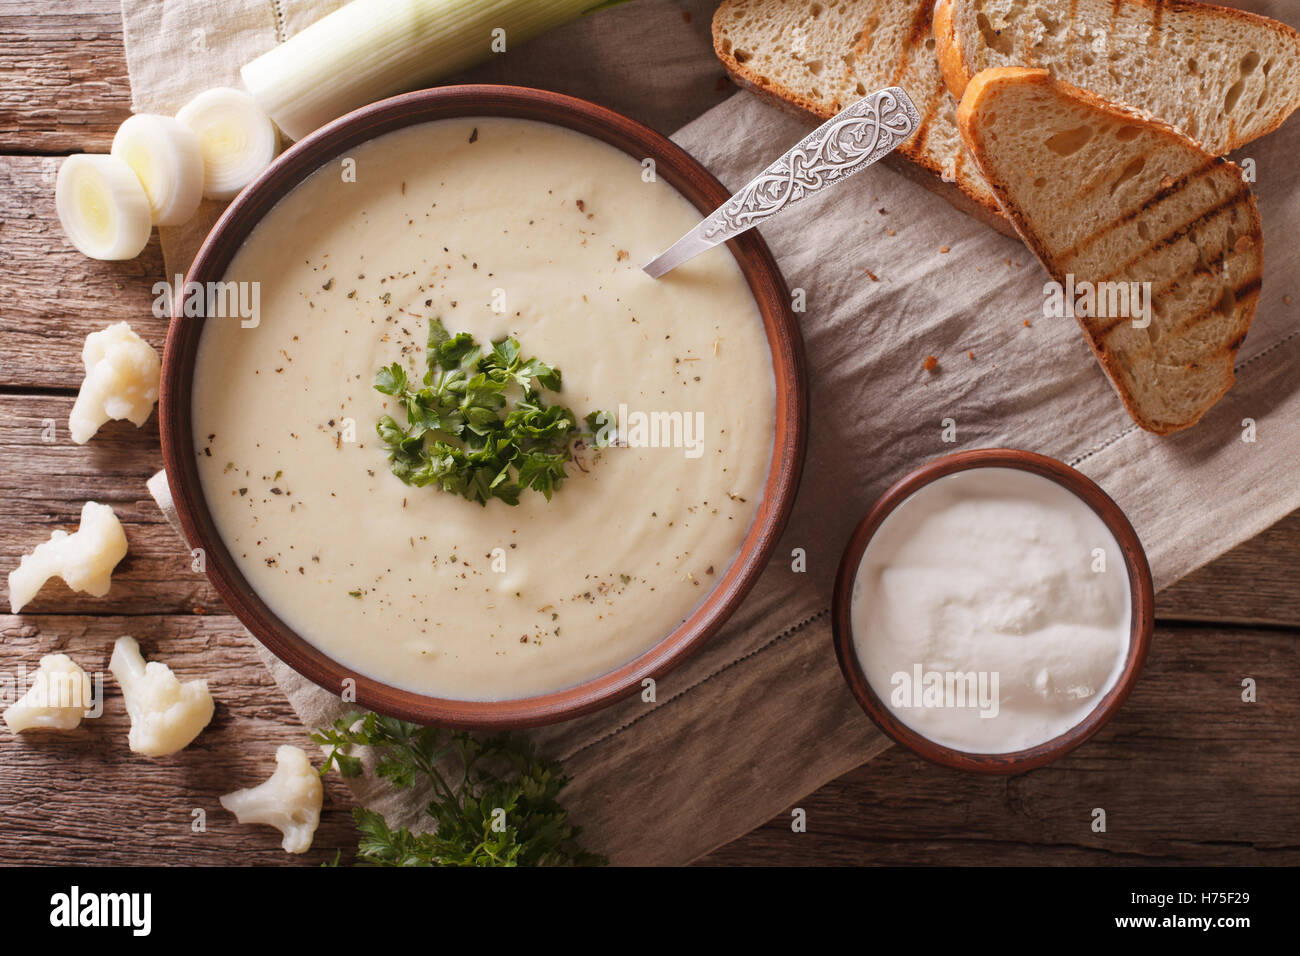 Cauliflower puree soup and ingredients close-up on the table. horizontal view from above - Stock Image